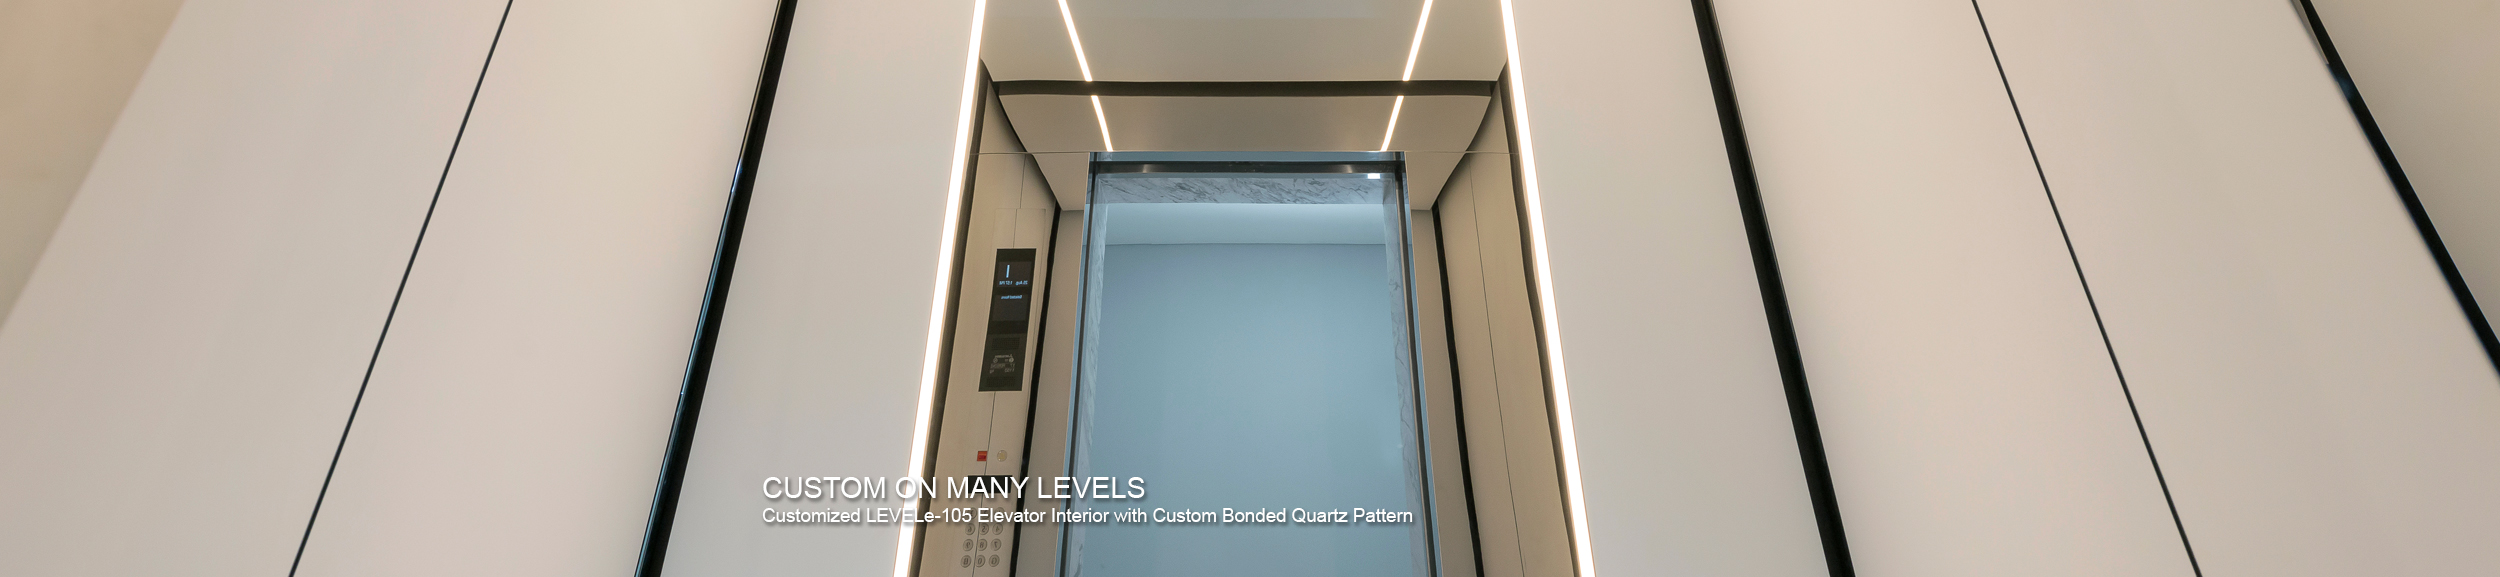 LEVELe-105 Elevator Interior with customized panel layout